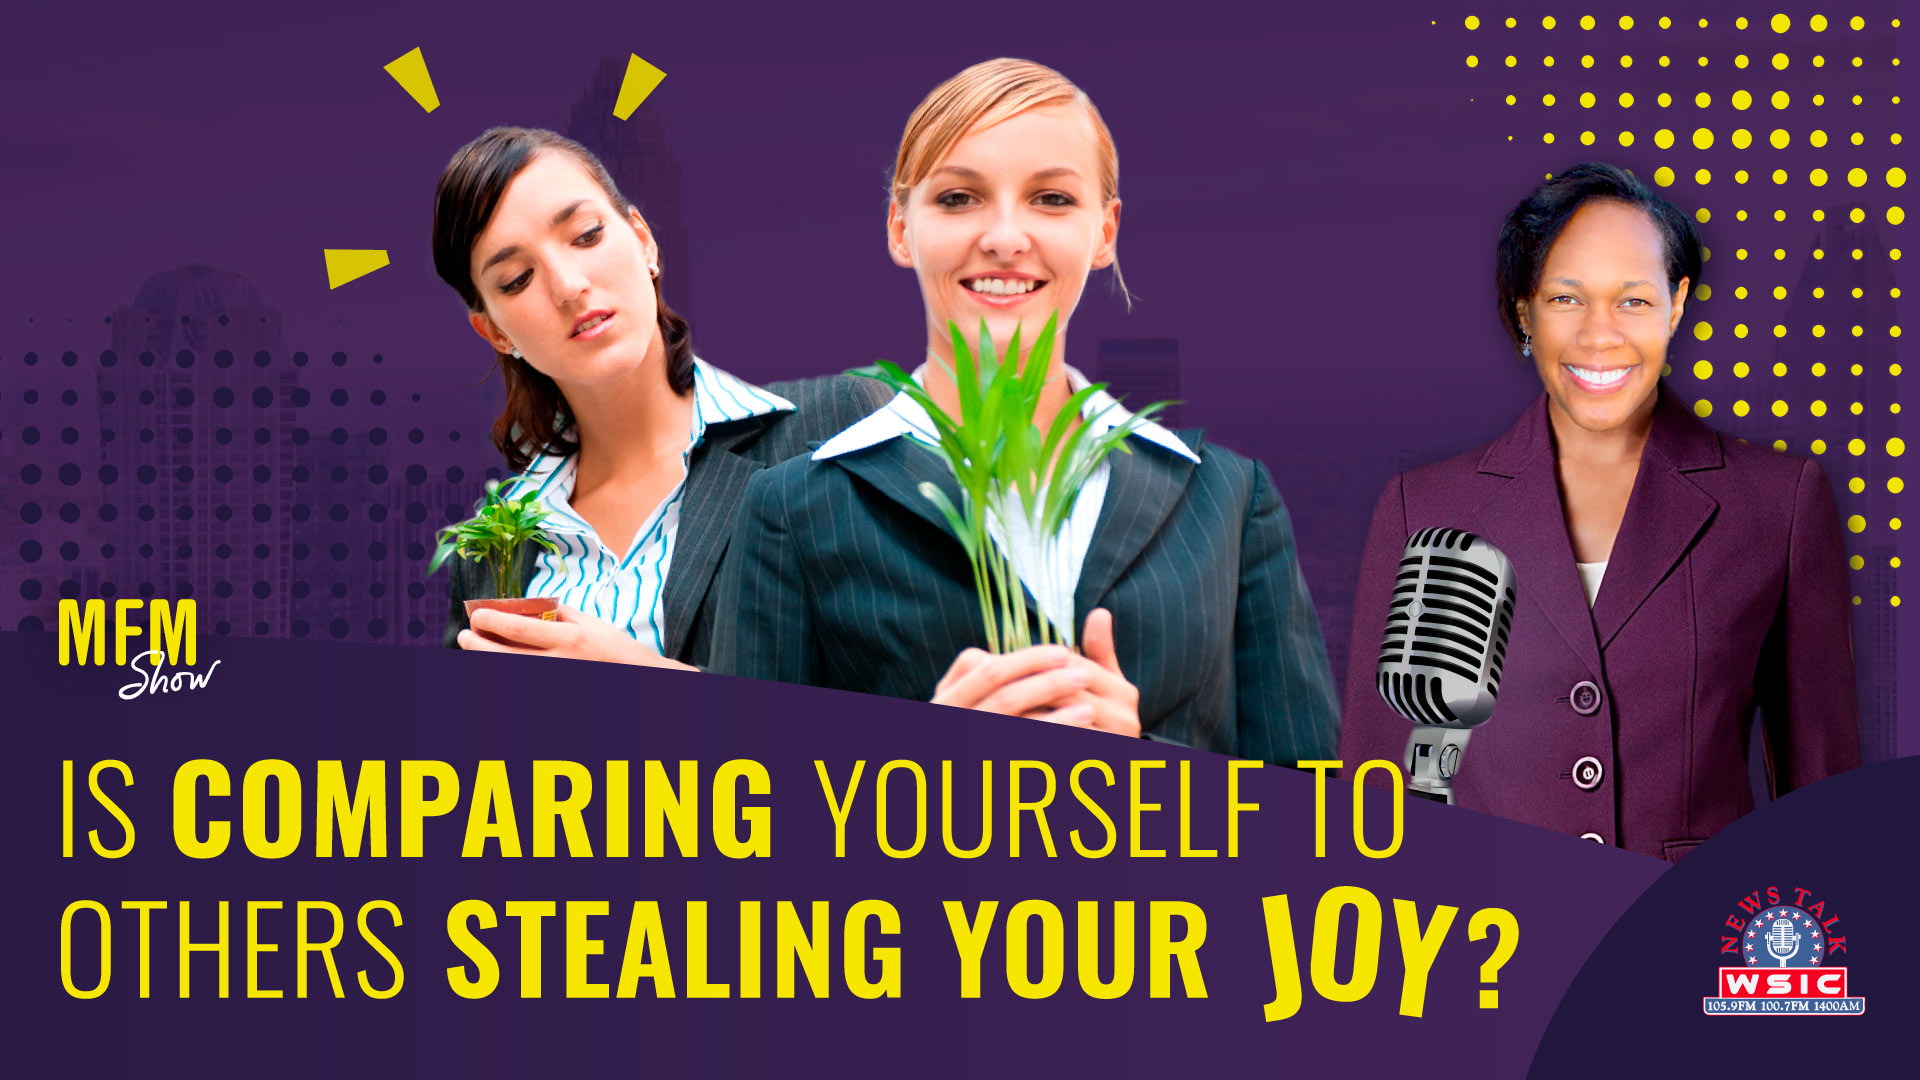 Is Comparing Yourself To Others Stealing Your Joy?